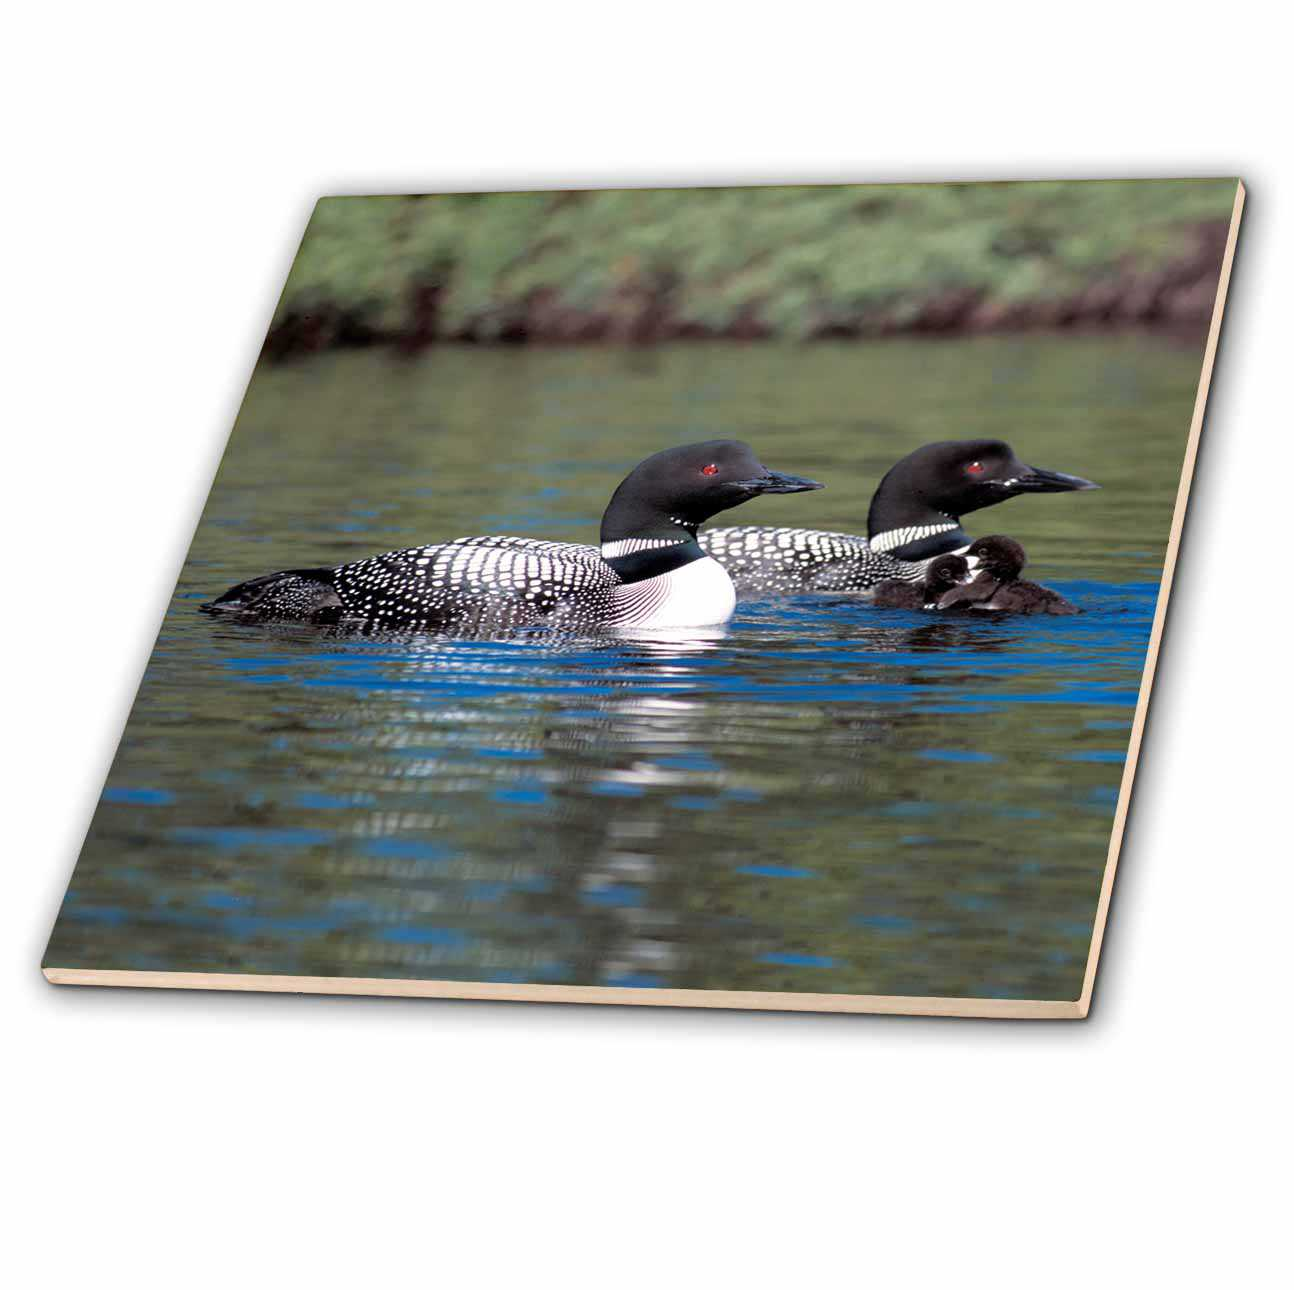 3dRose Family of Three Loons - Ceramic Tile, 4-inch